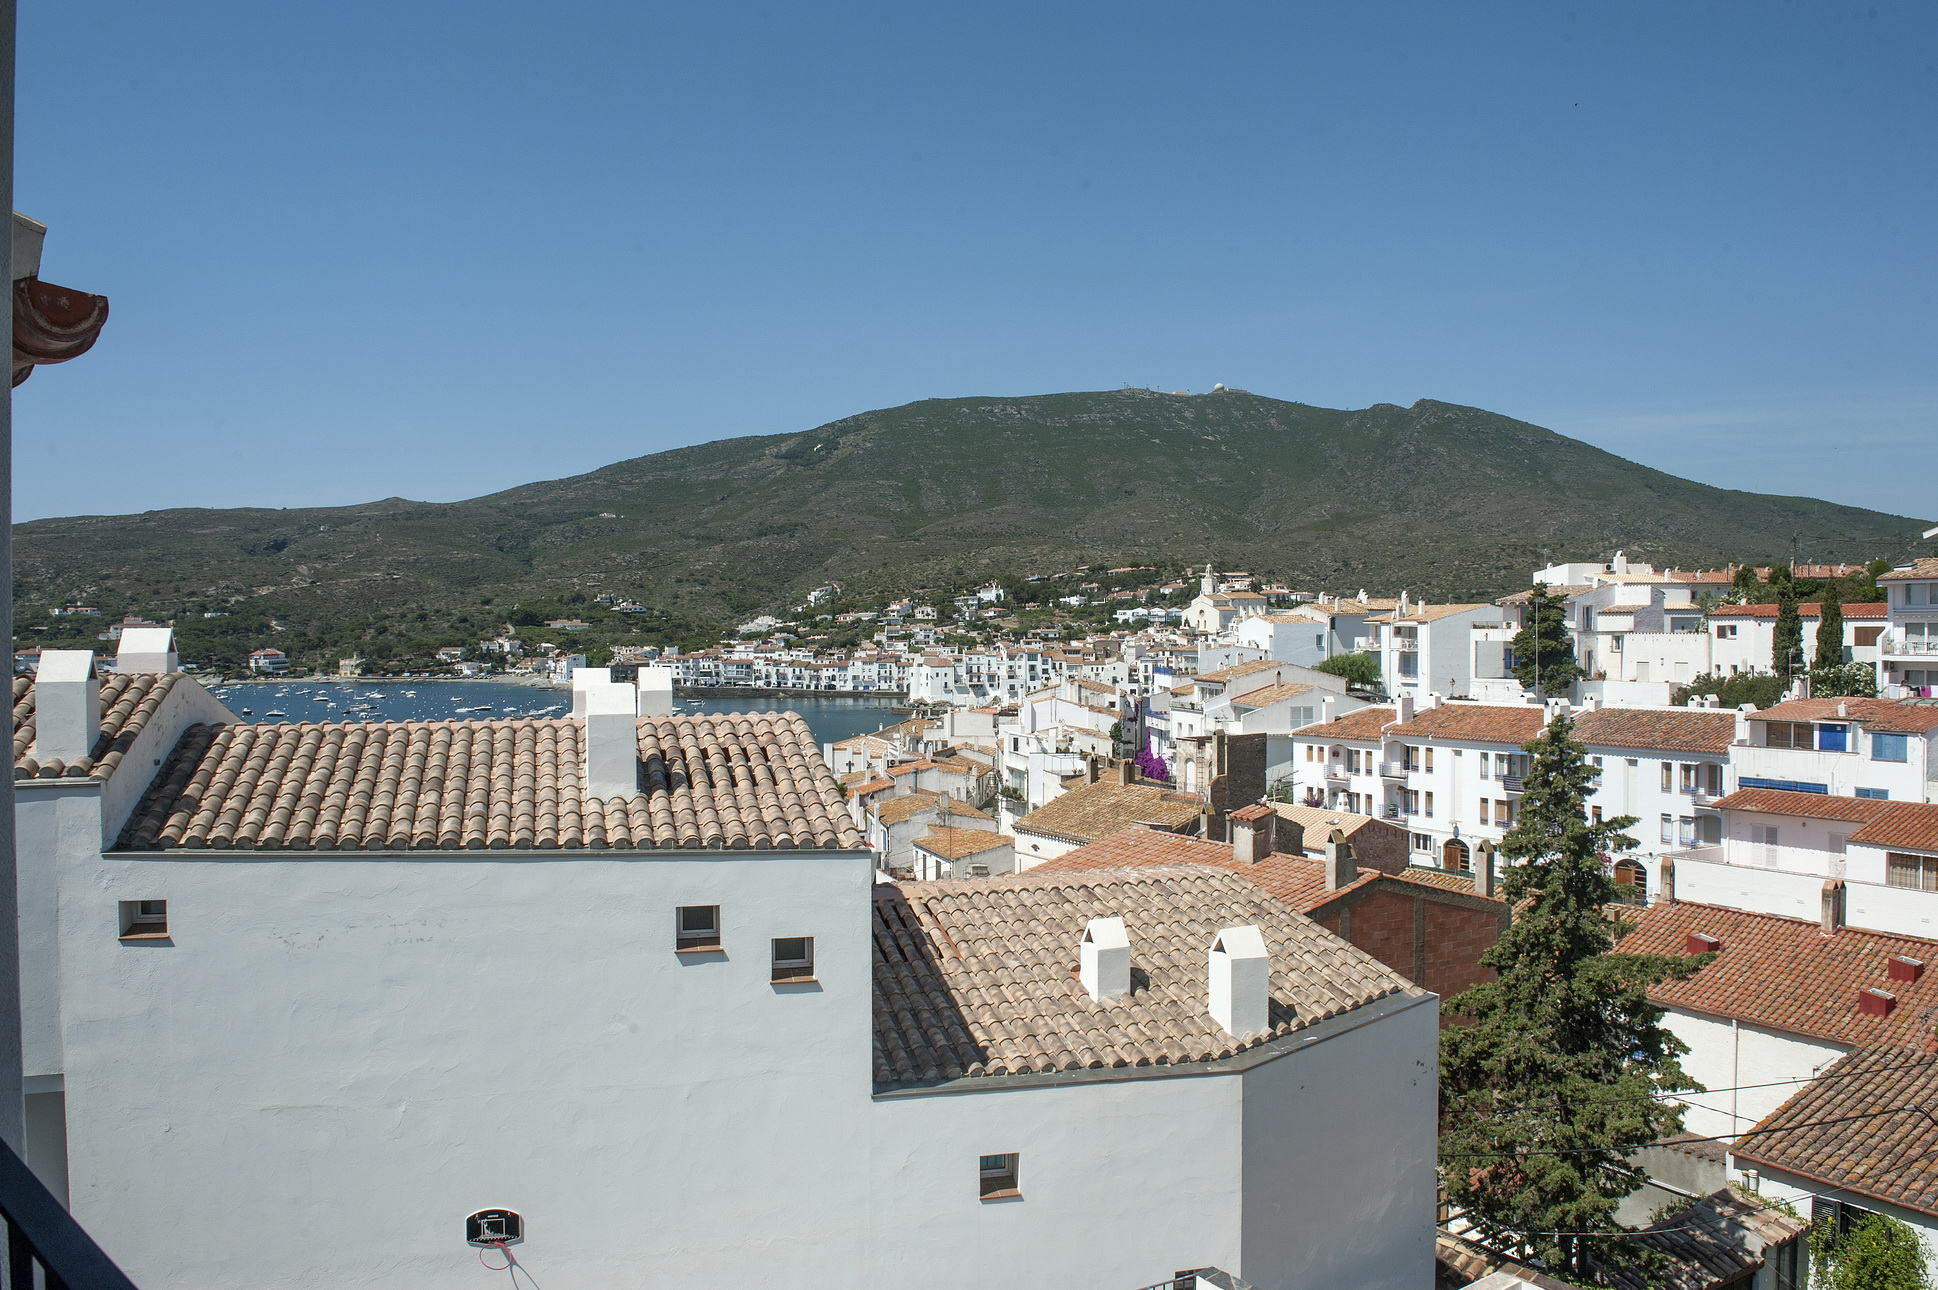 Apartment for Sale at Unique complex of 5 residential units with pool in the centre of Cadaqués Cadaques, Costa Brava, 17488 Spain